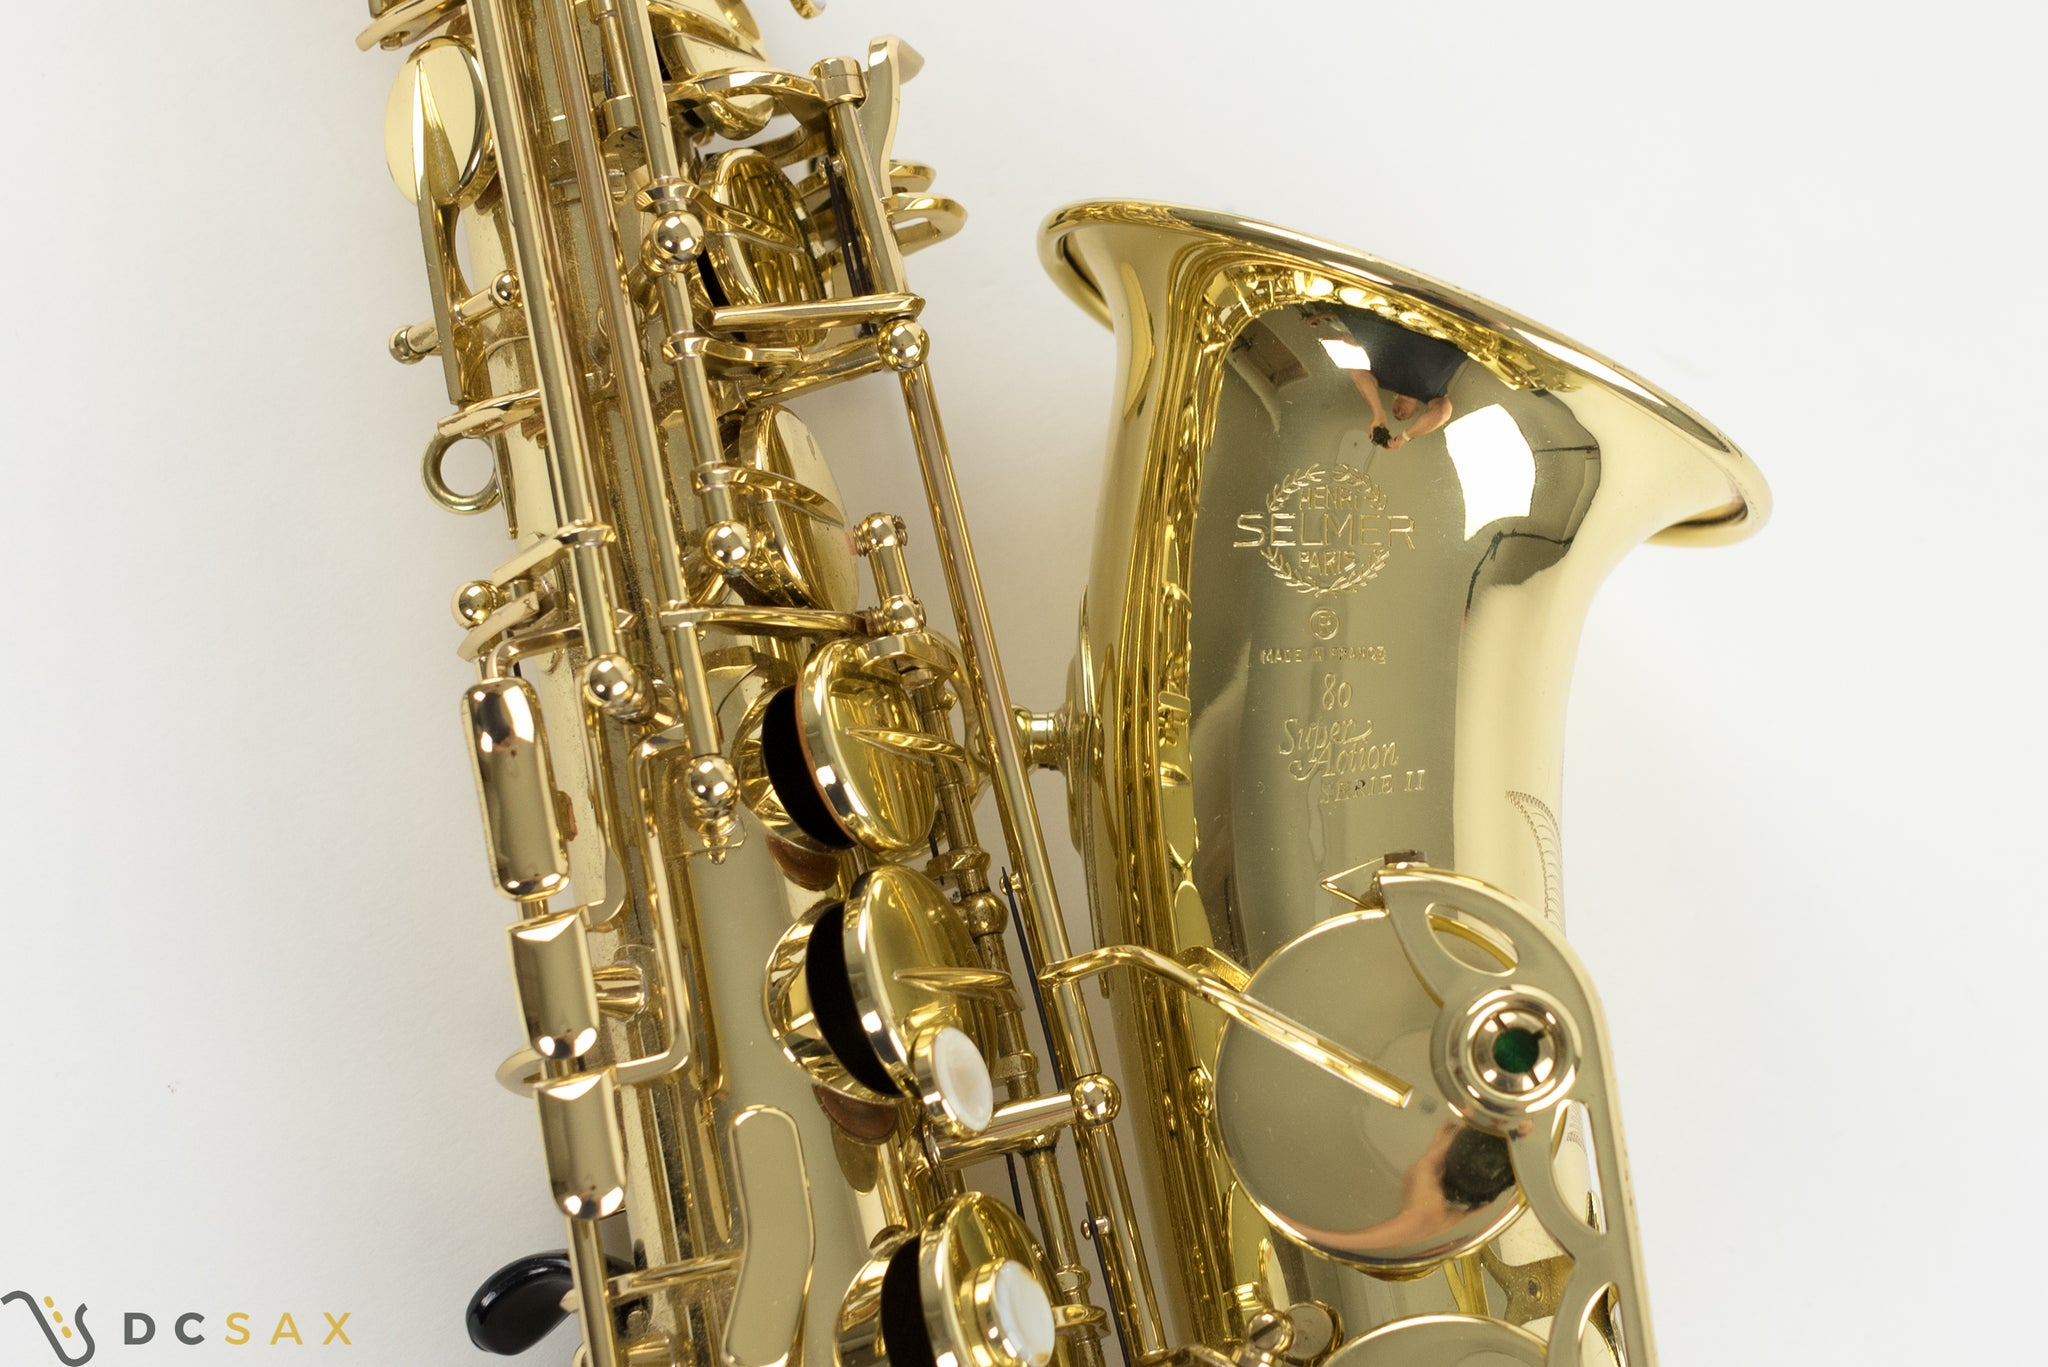 Selmer Series II Alto Saxophone, Just Serviced, Excellent Condition